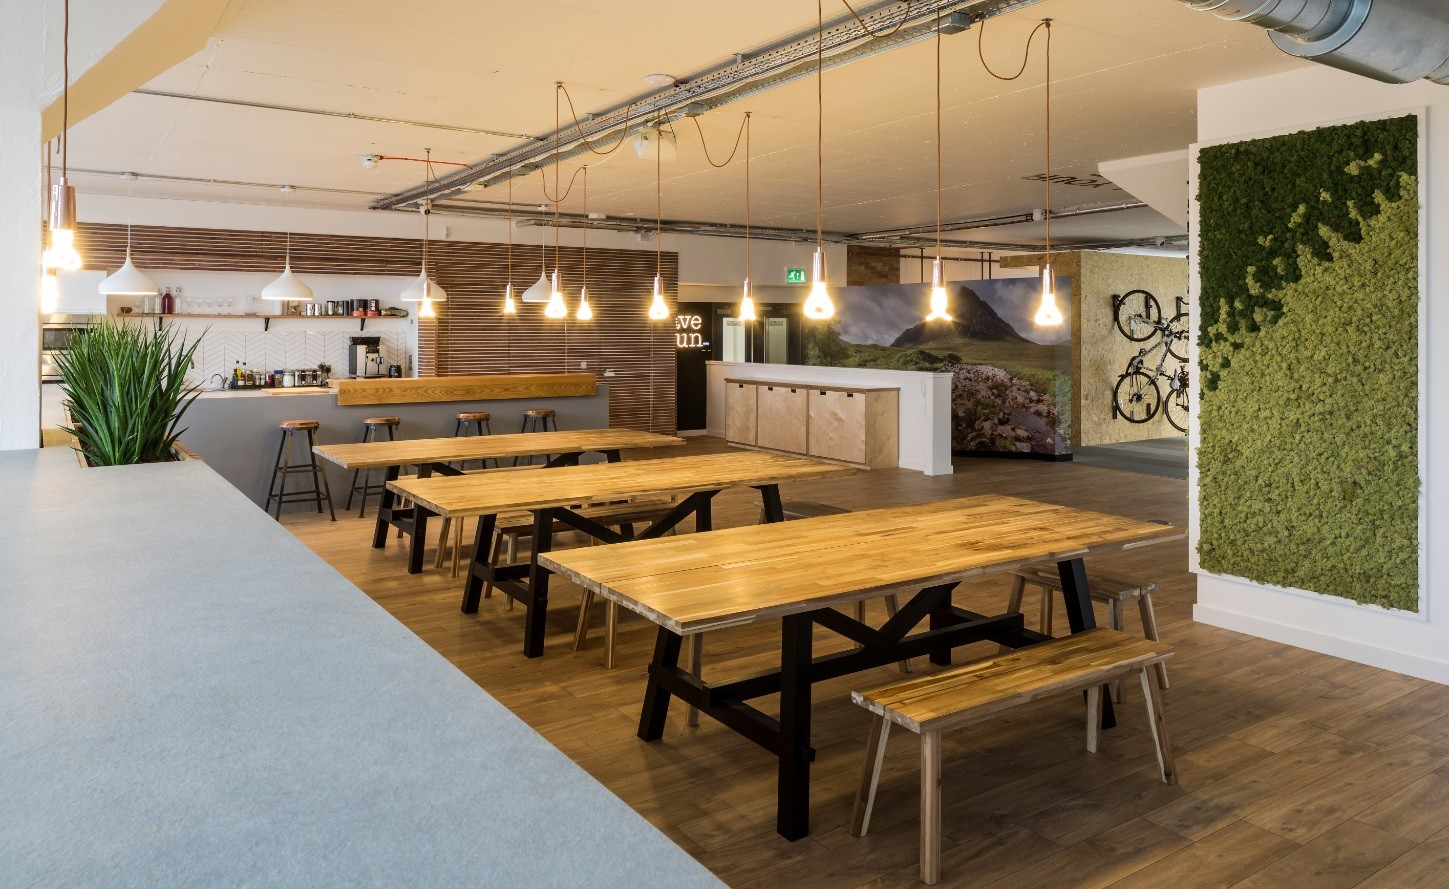 Bare Bones Office Shell Transformed Into Quirky Travel Hq February